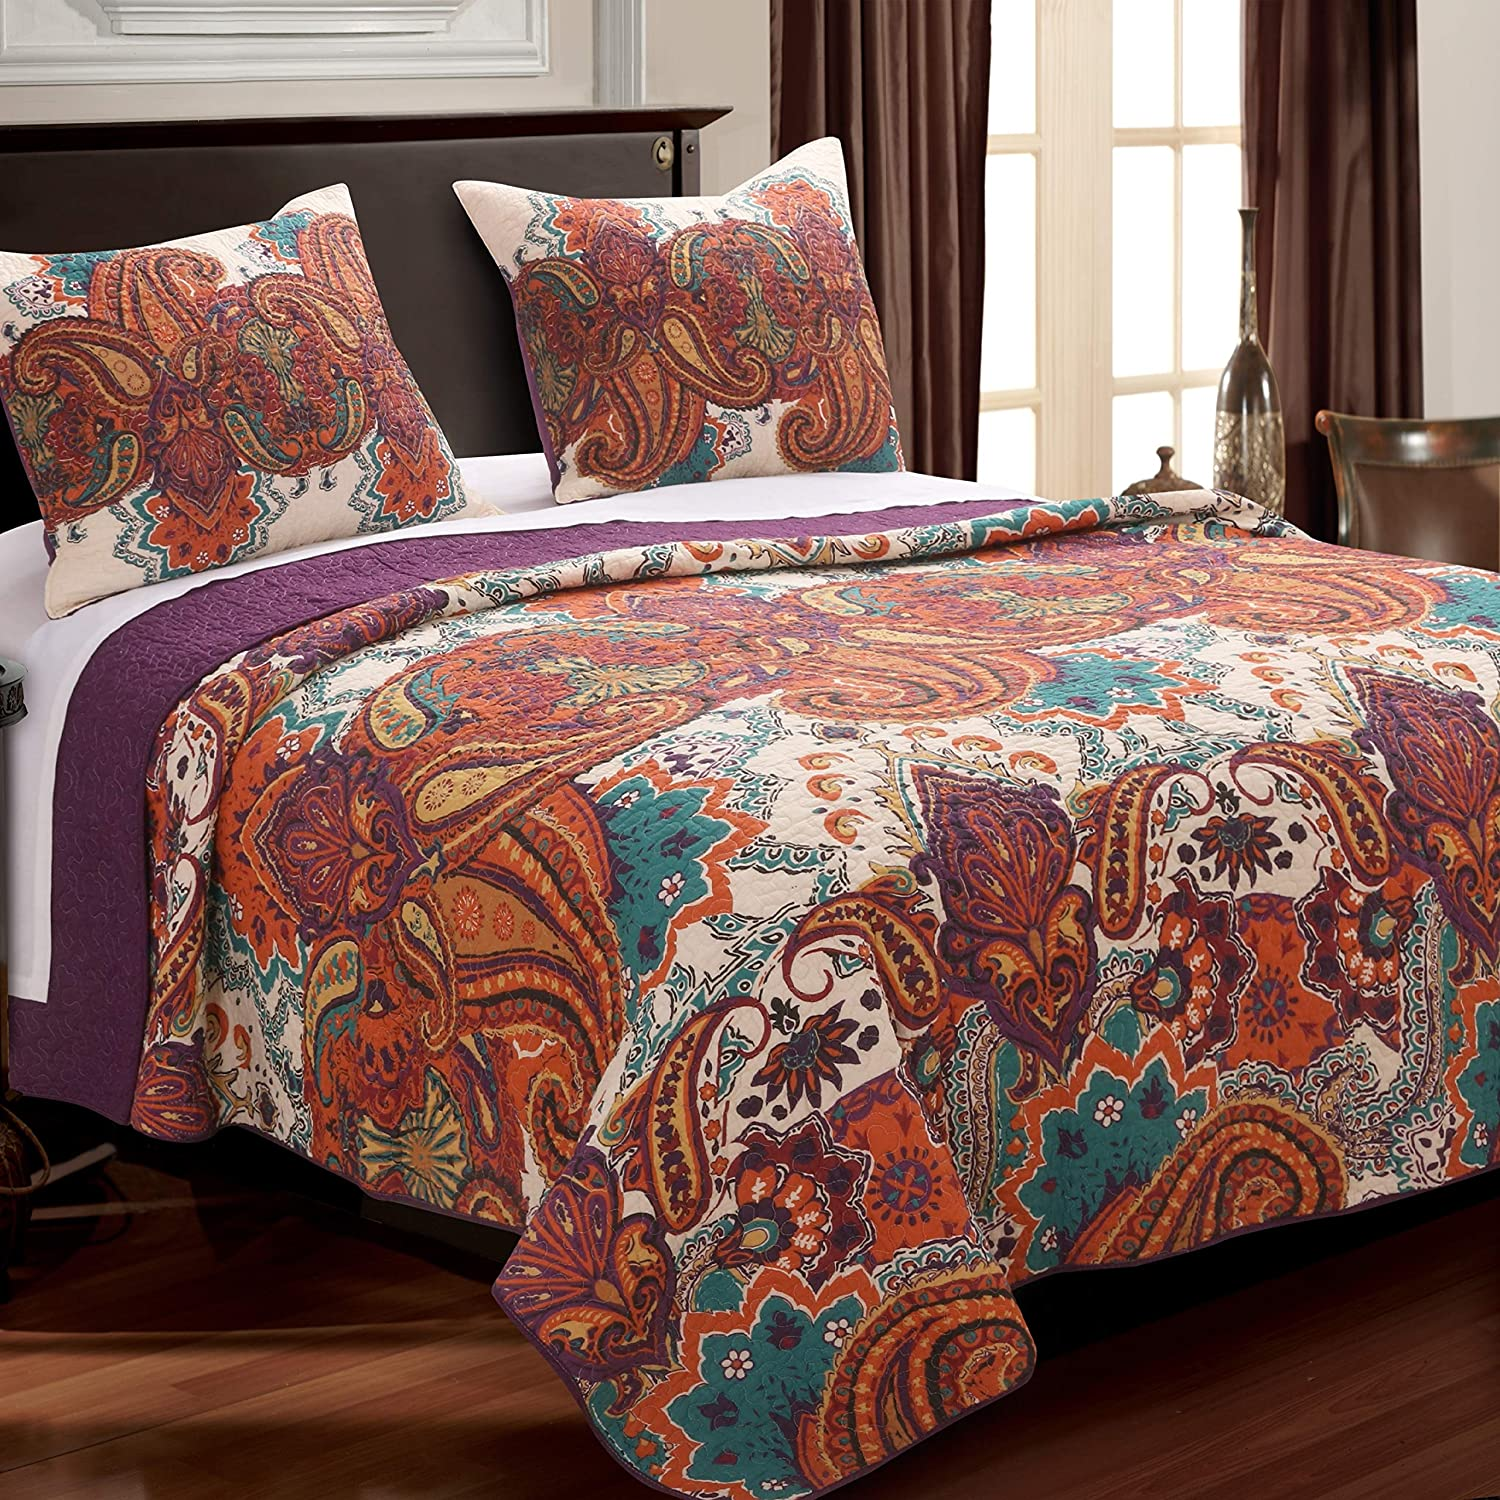 Greenland Home Nirvana Quilt Set, Full Queen, Spice